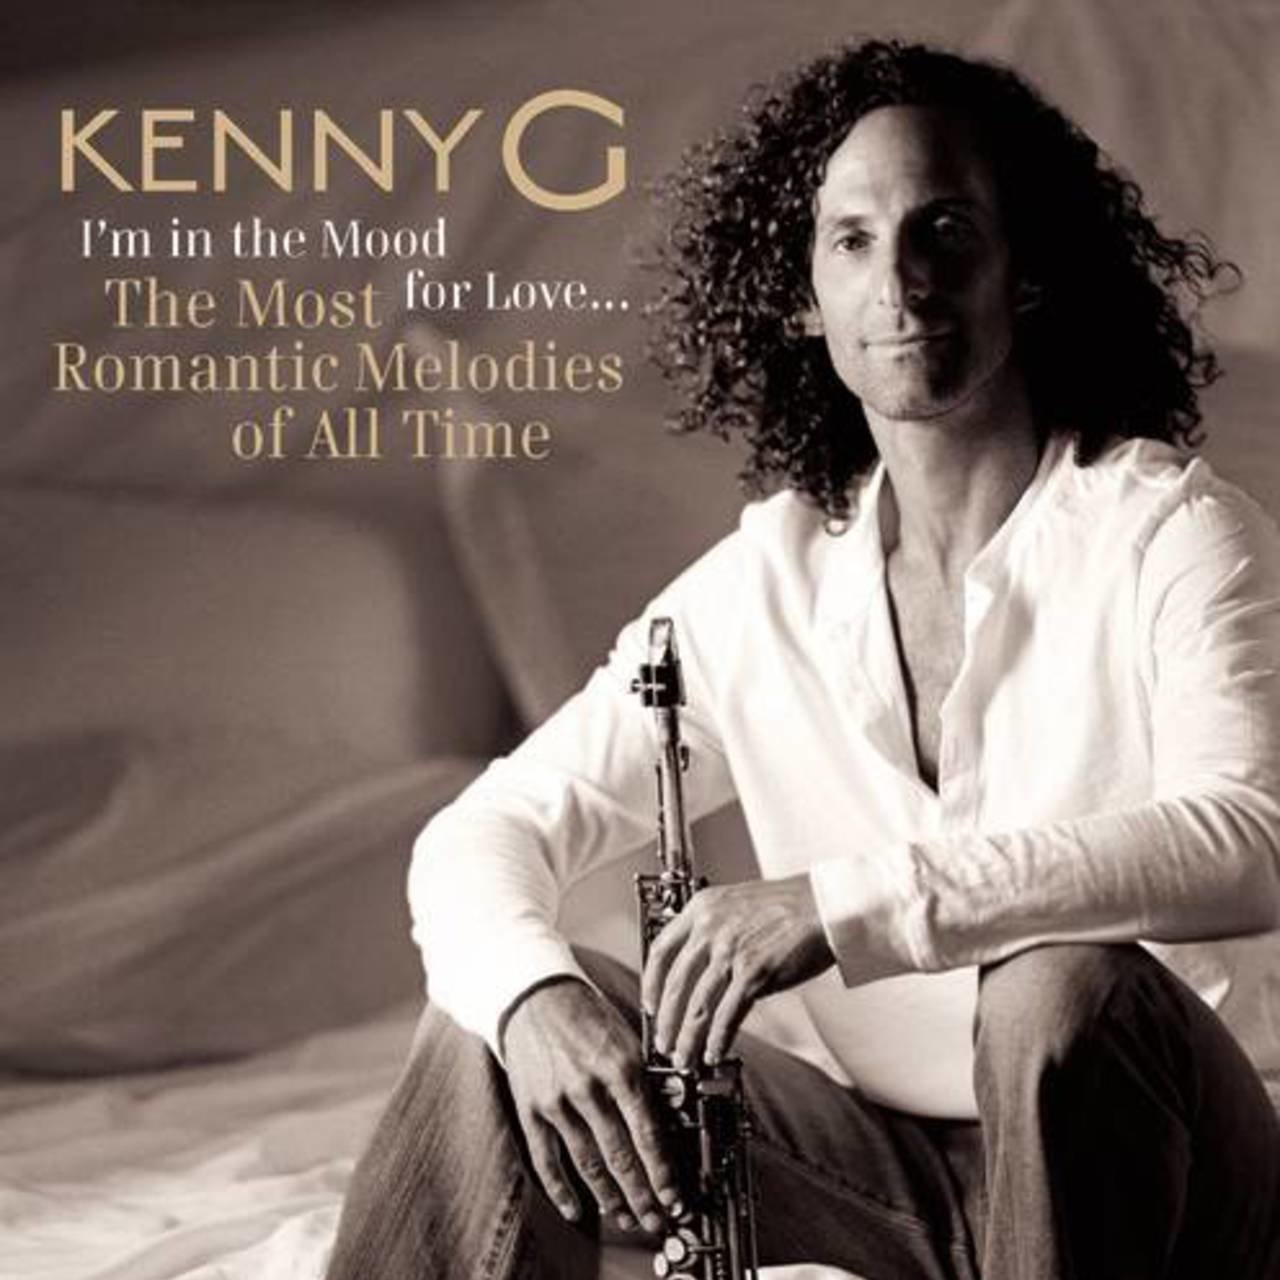 Tidal Listen To Ultimate Kenny G On Tidal